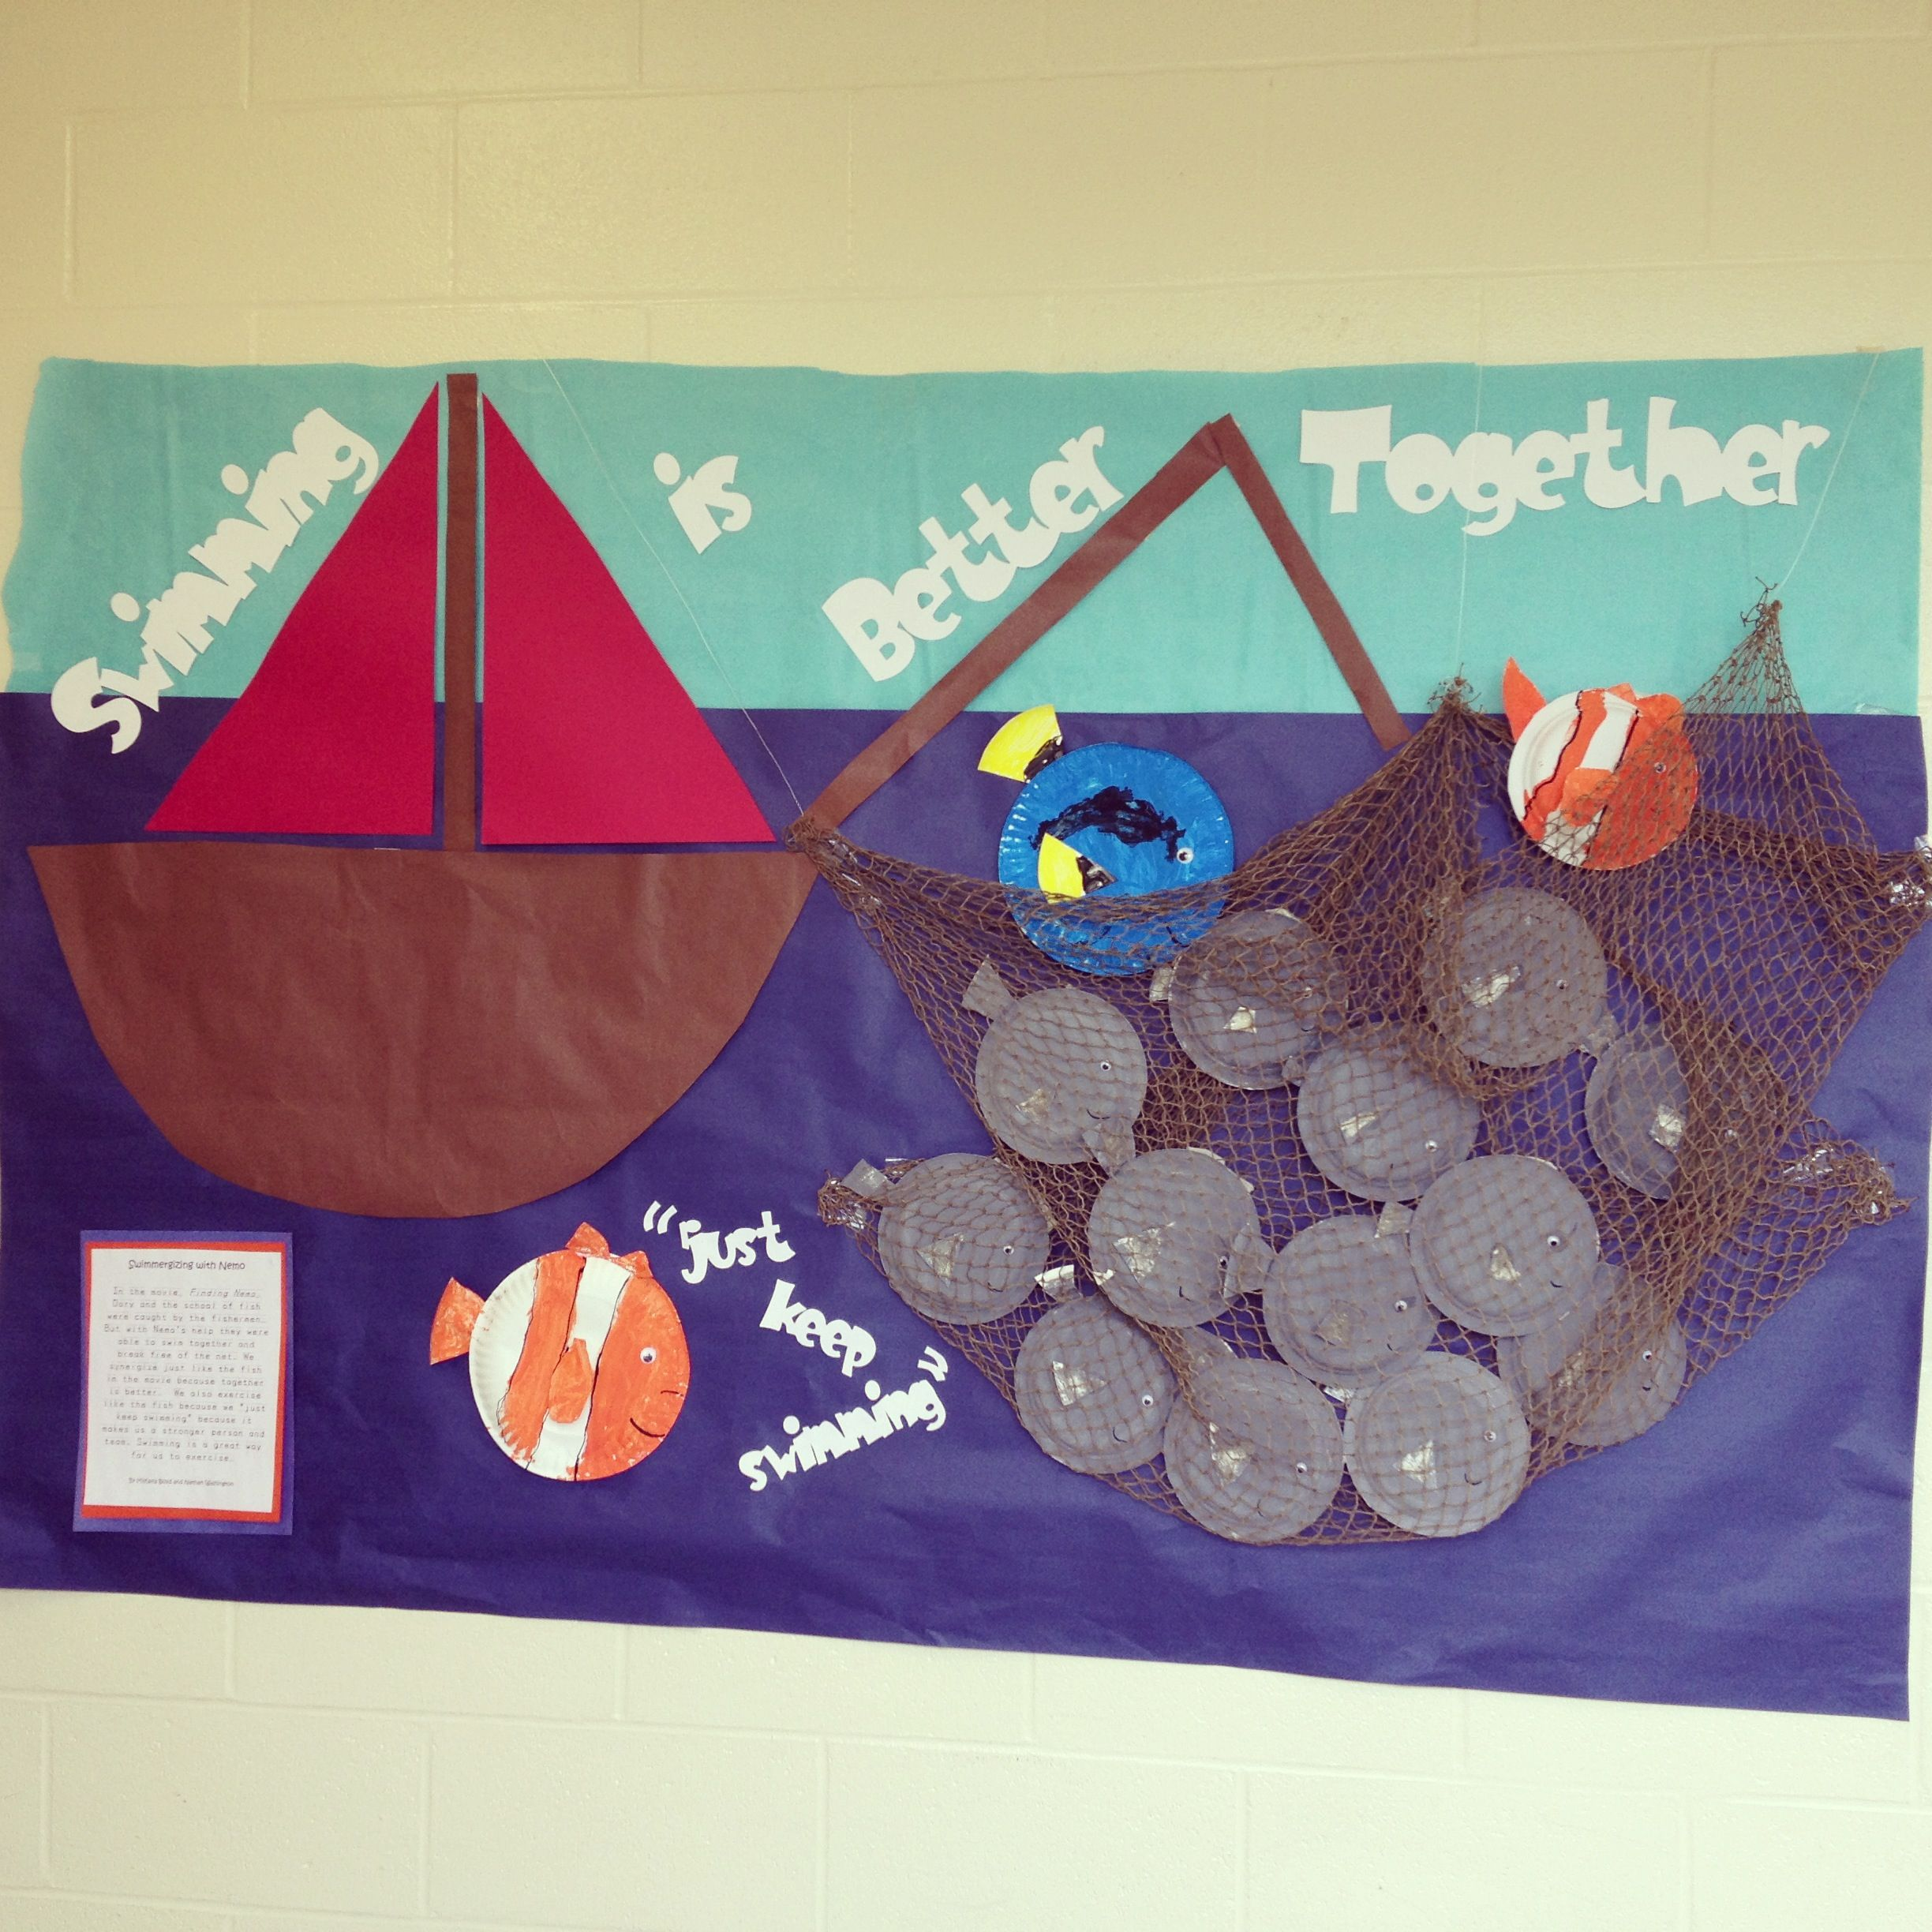 Leader In Me School 7 Habits Habit 6 Synergize Bulletin Board Swimming Is Better Together